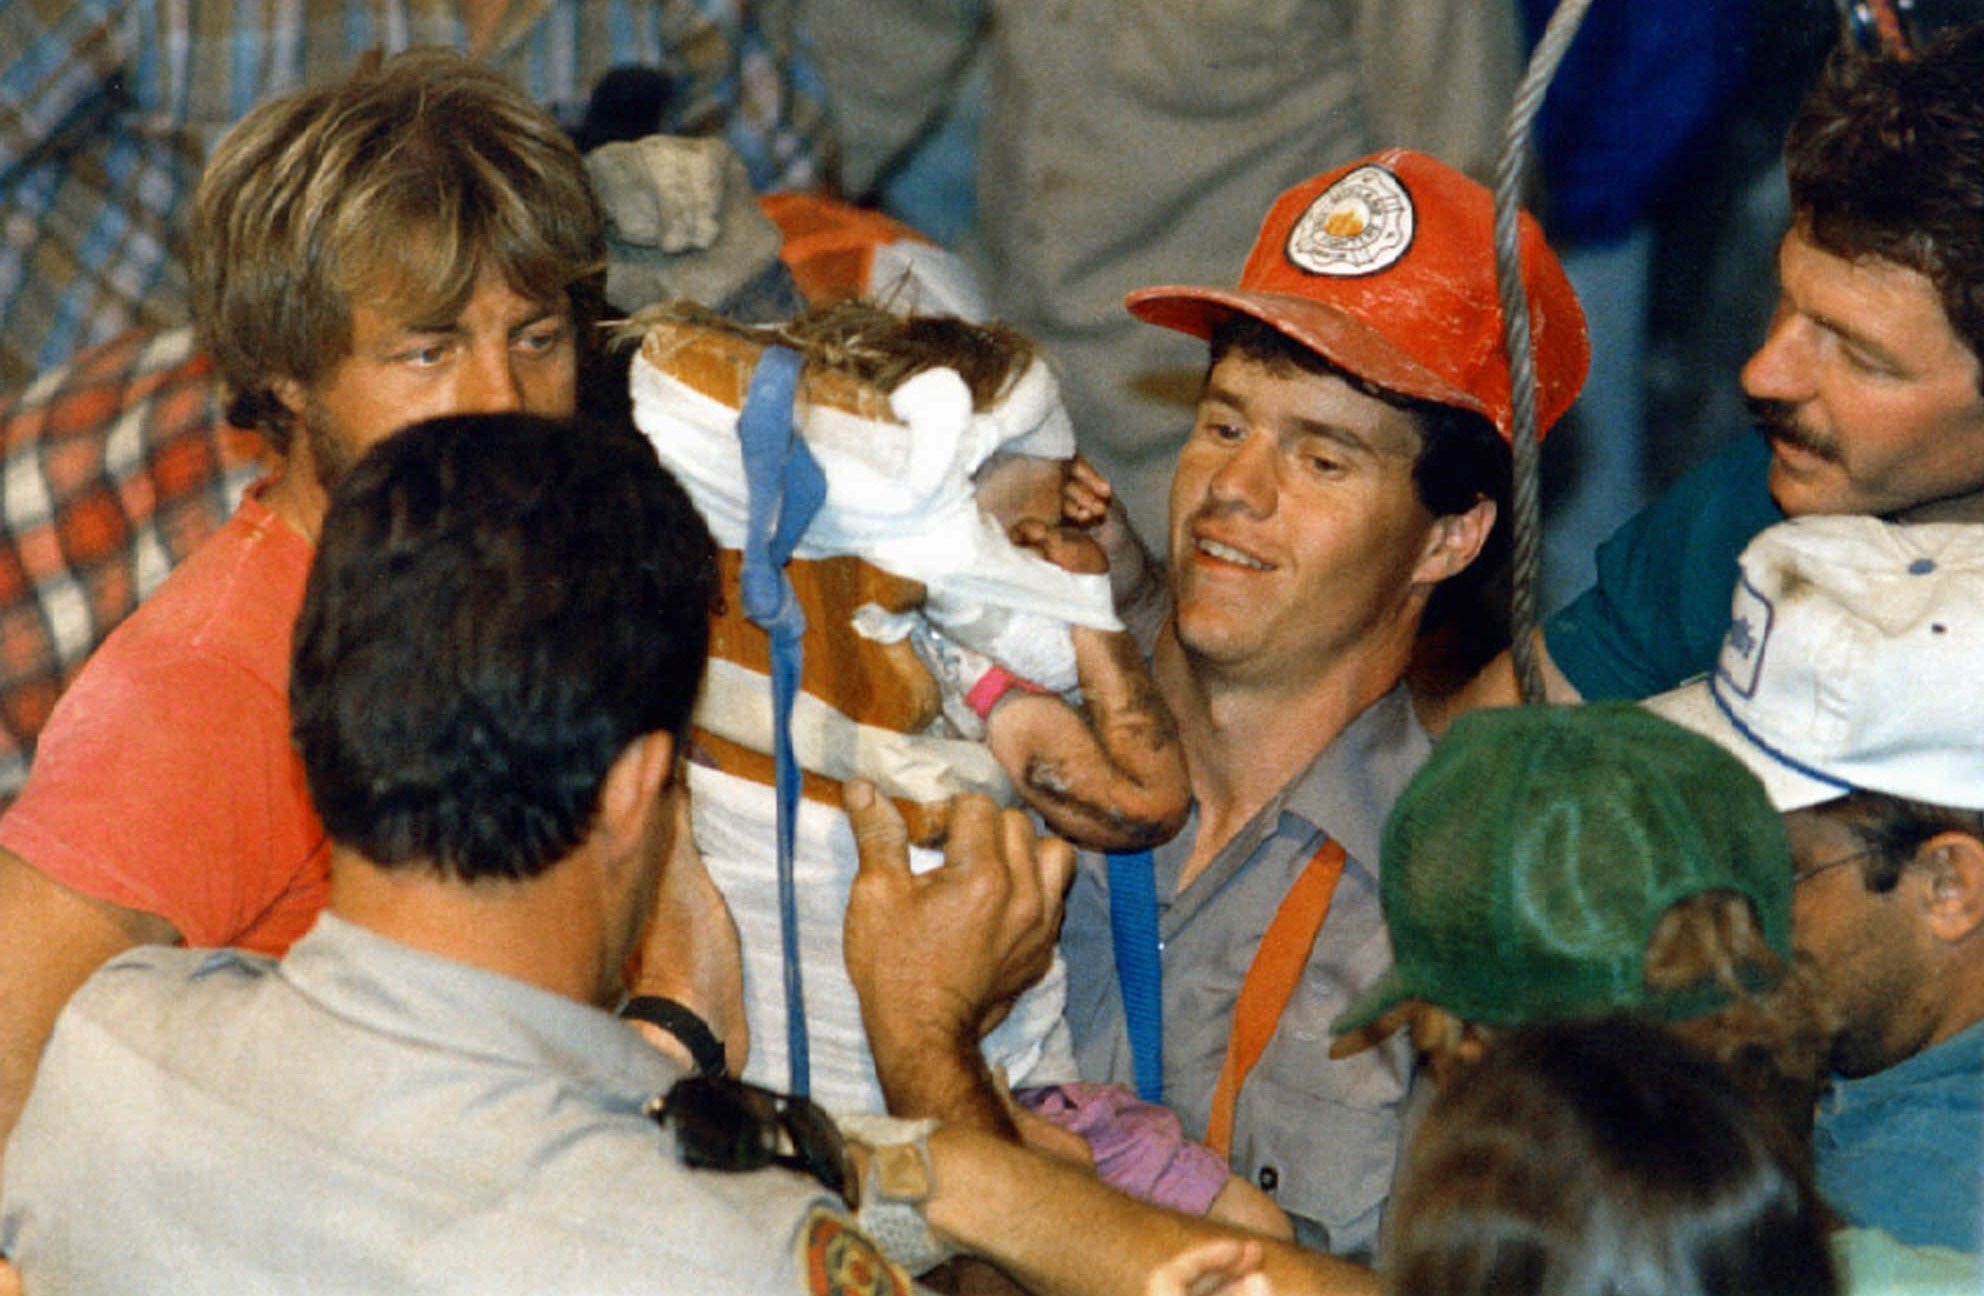 "'I'll never forget her singing ""Winnie the Pooh""': the rescue of Baby Jessica in 1987"